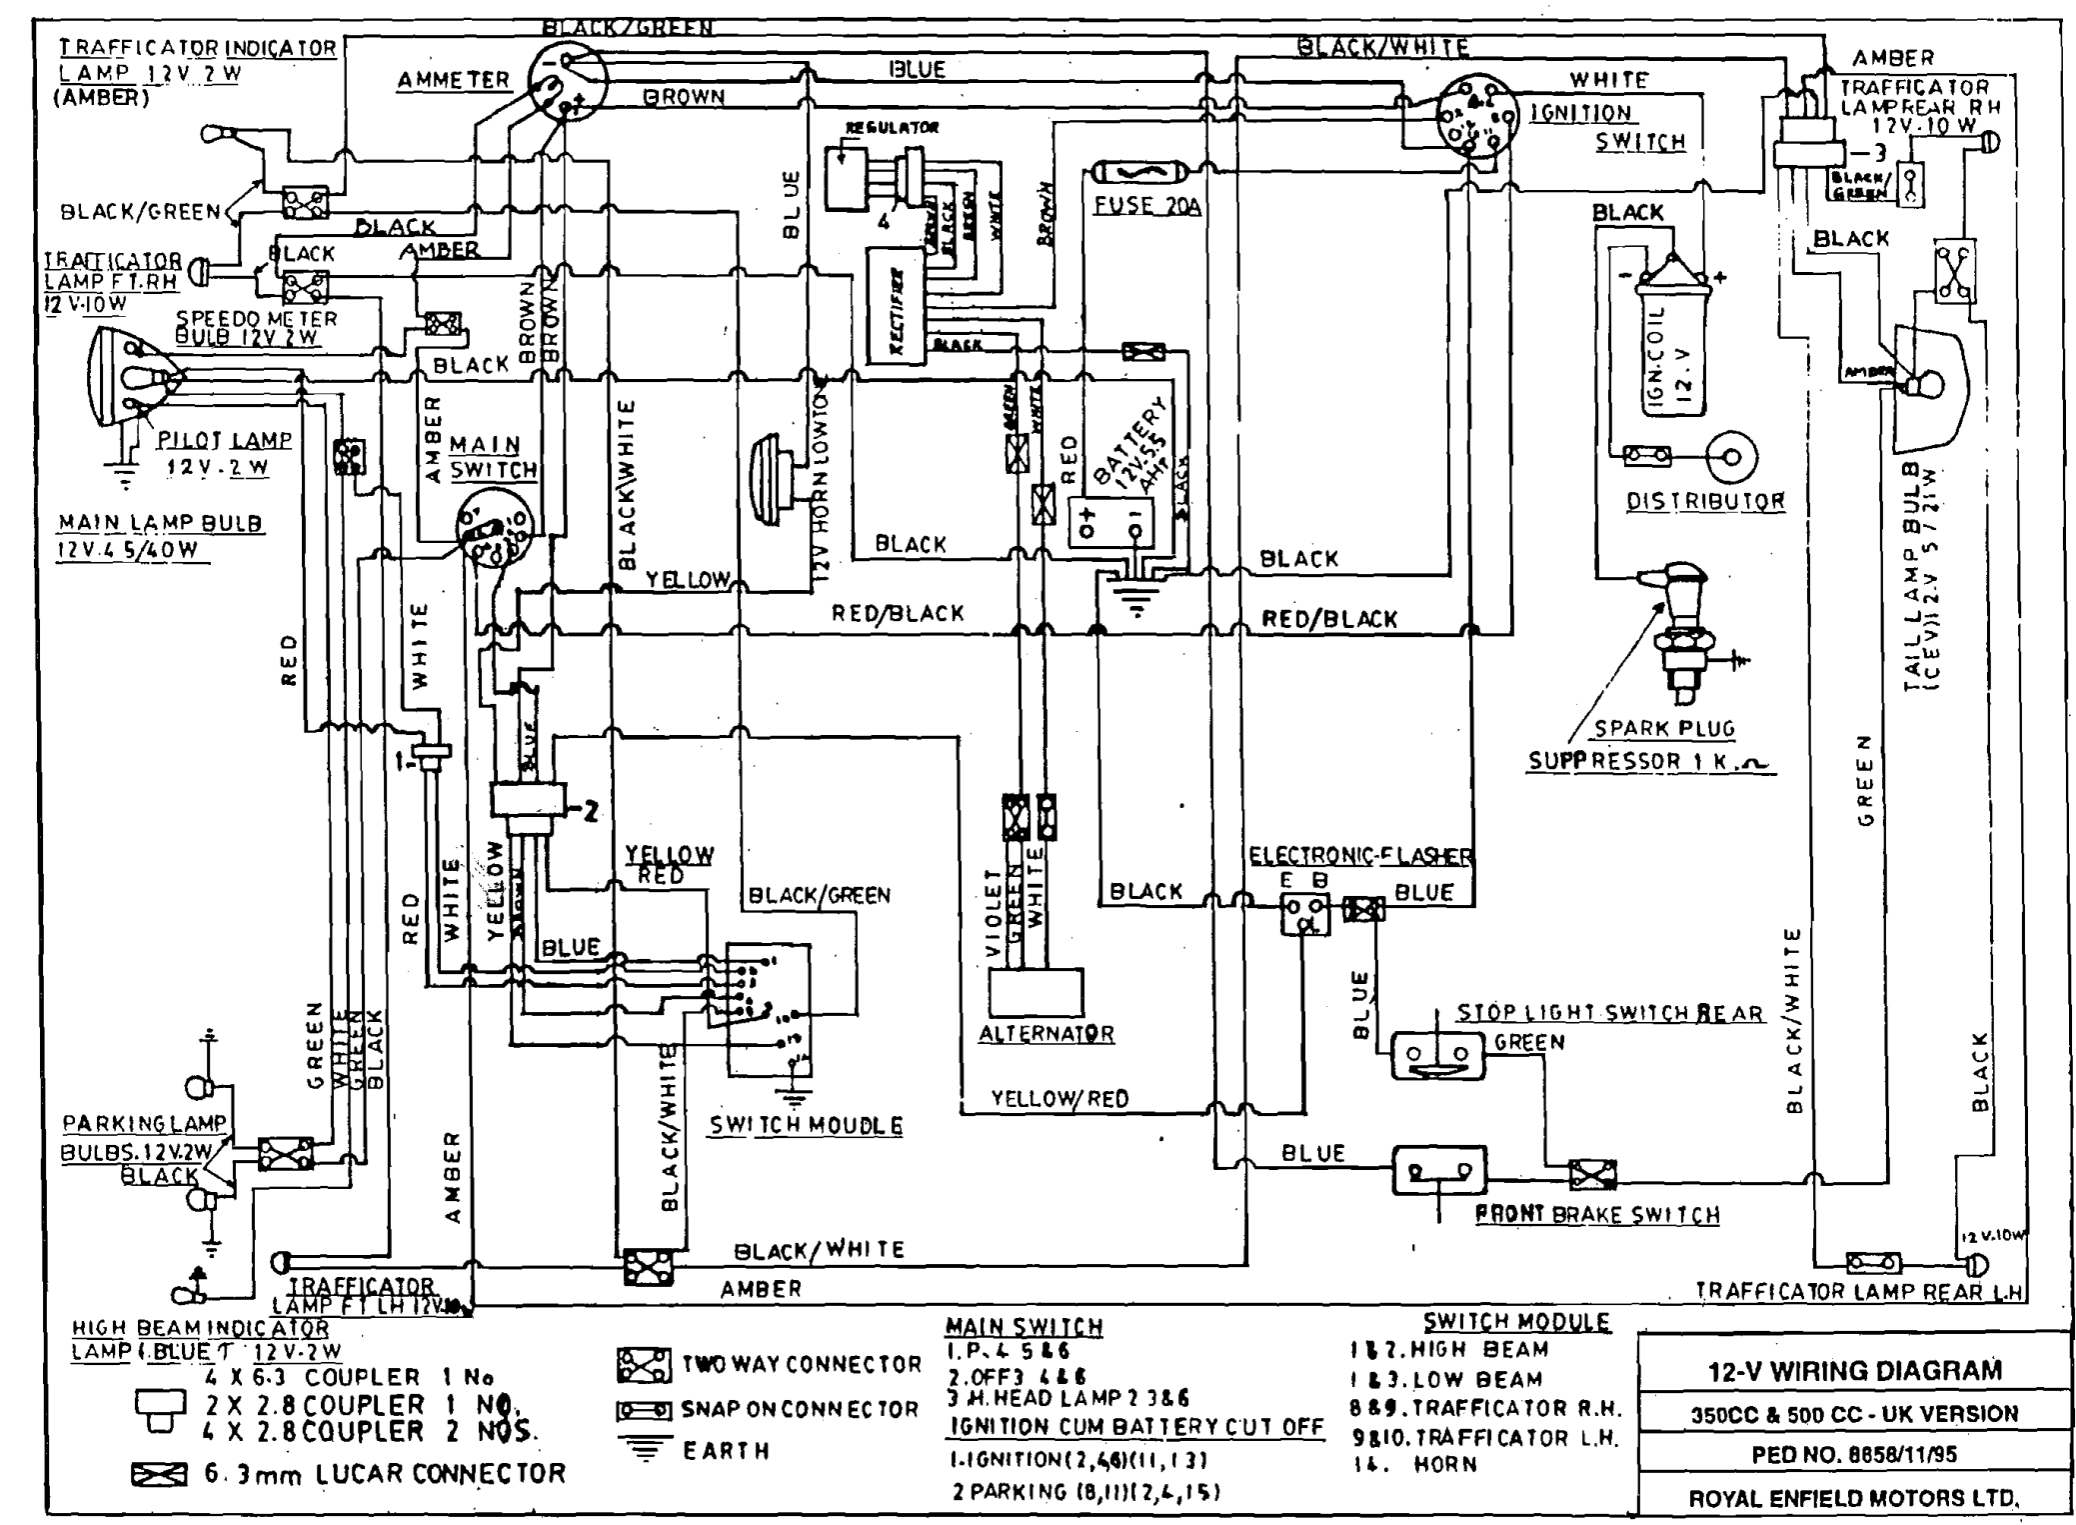 GG_5368] 1956 Indian Royal Enfield Wiring Diagram Schematic Wiring